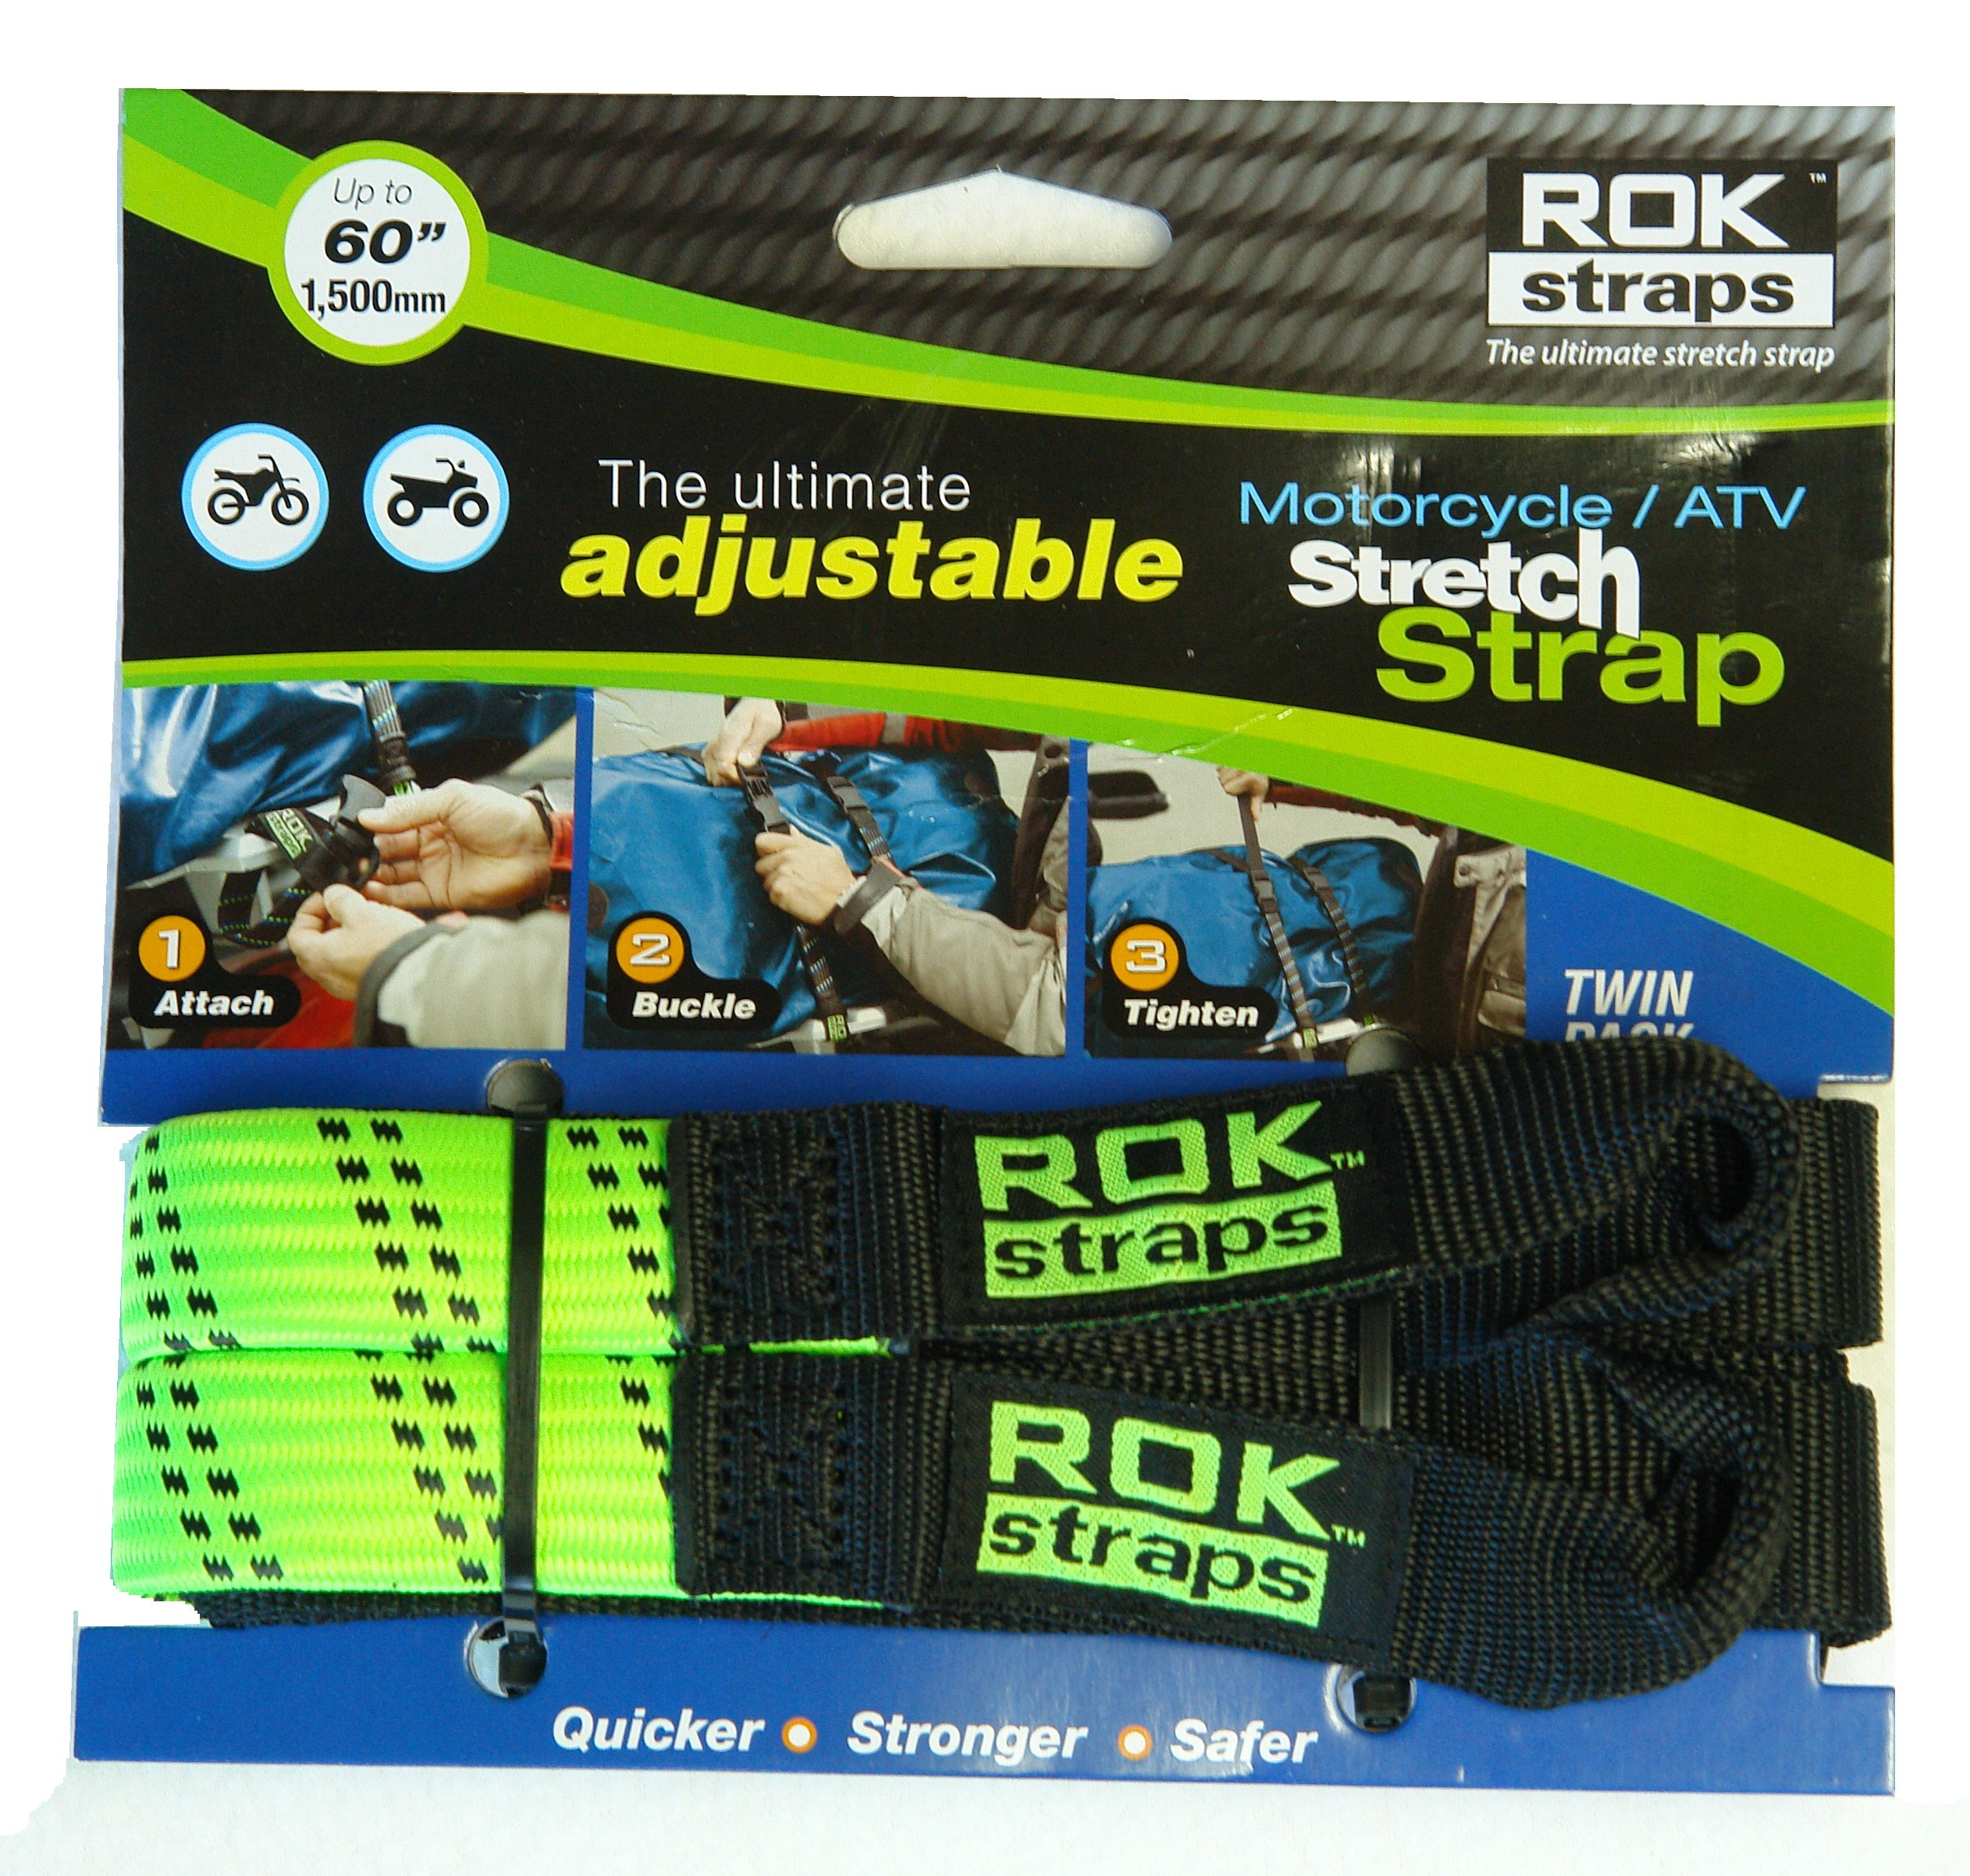 ROK Strap Adjustable Motorcycle Stretch 18''-60'' 2-Pk - Lime Green